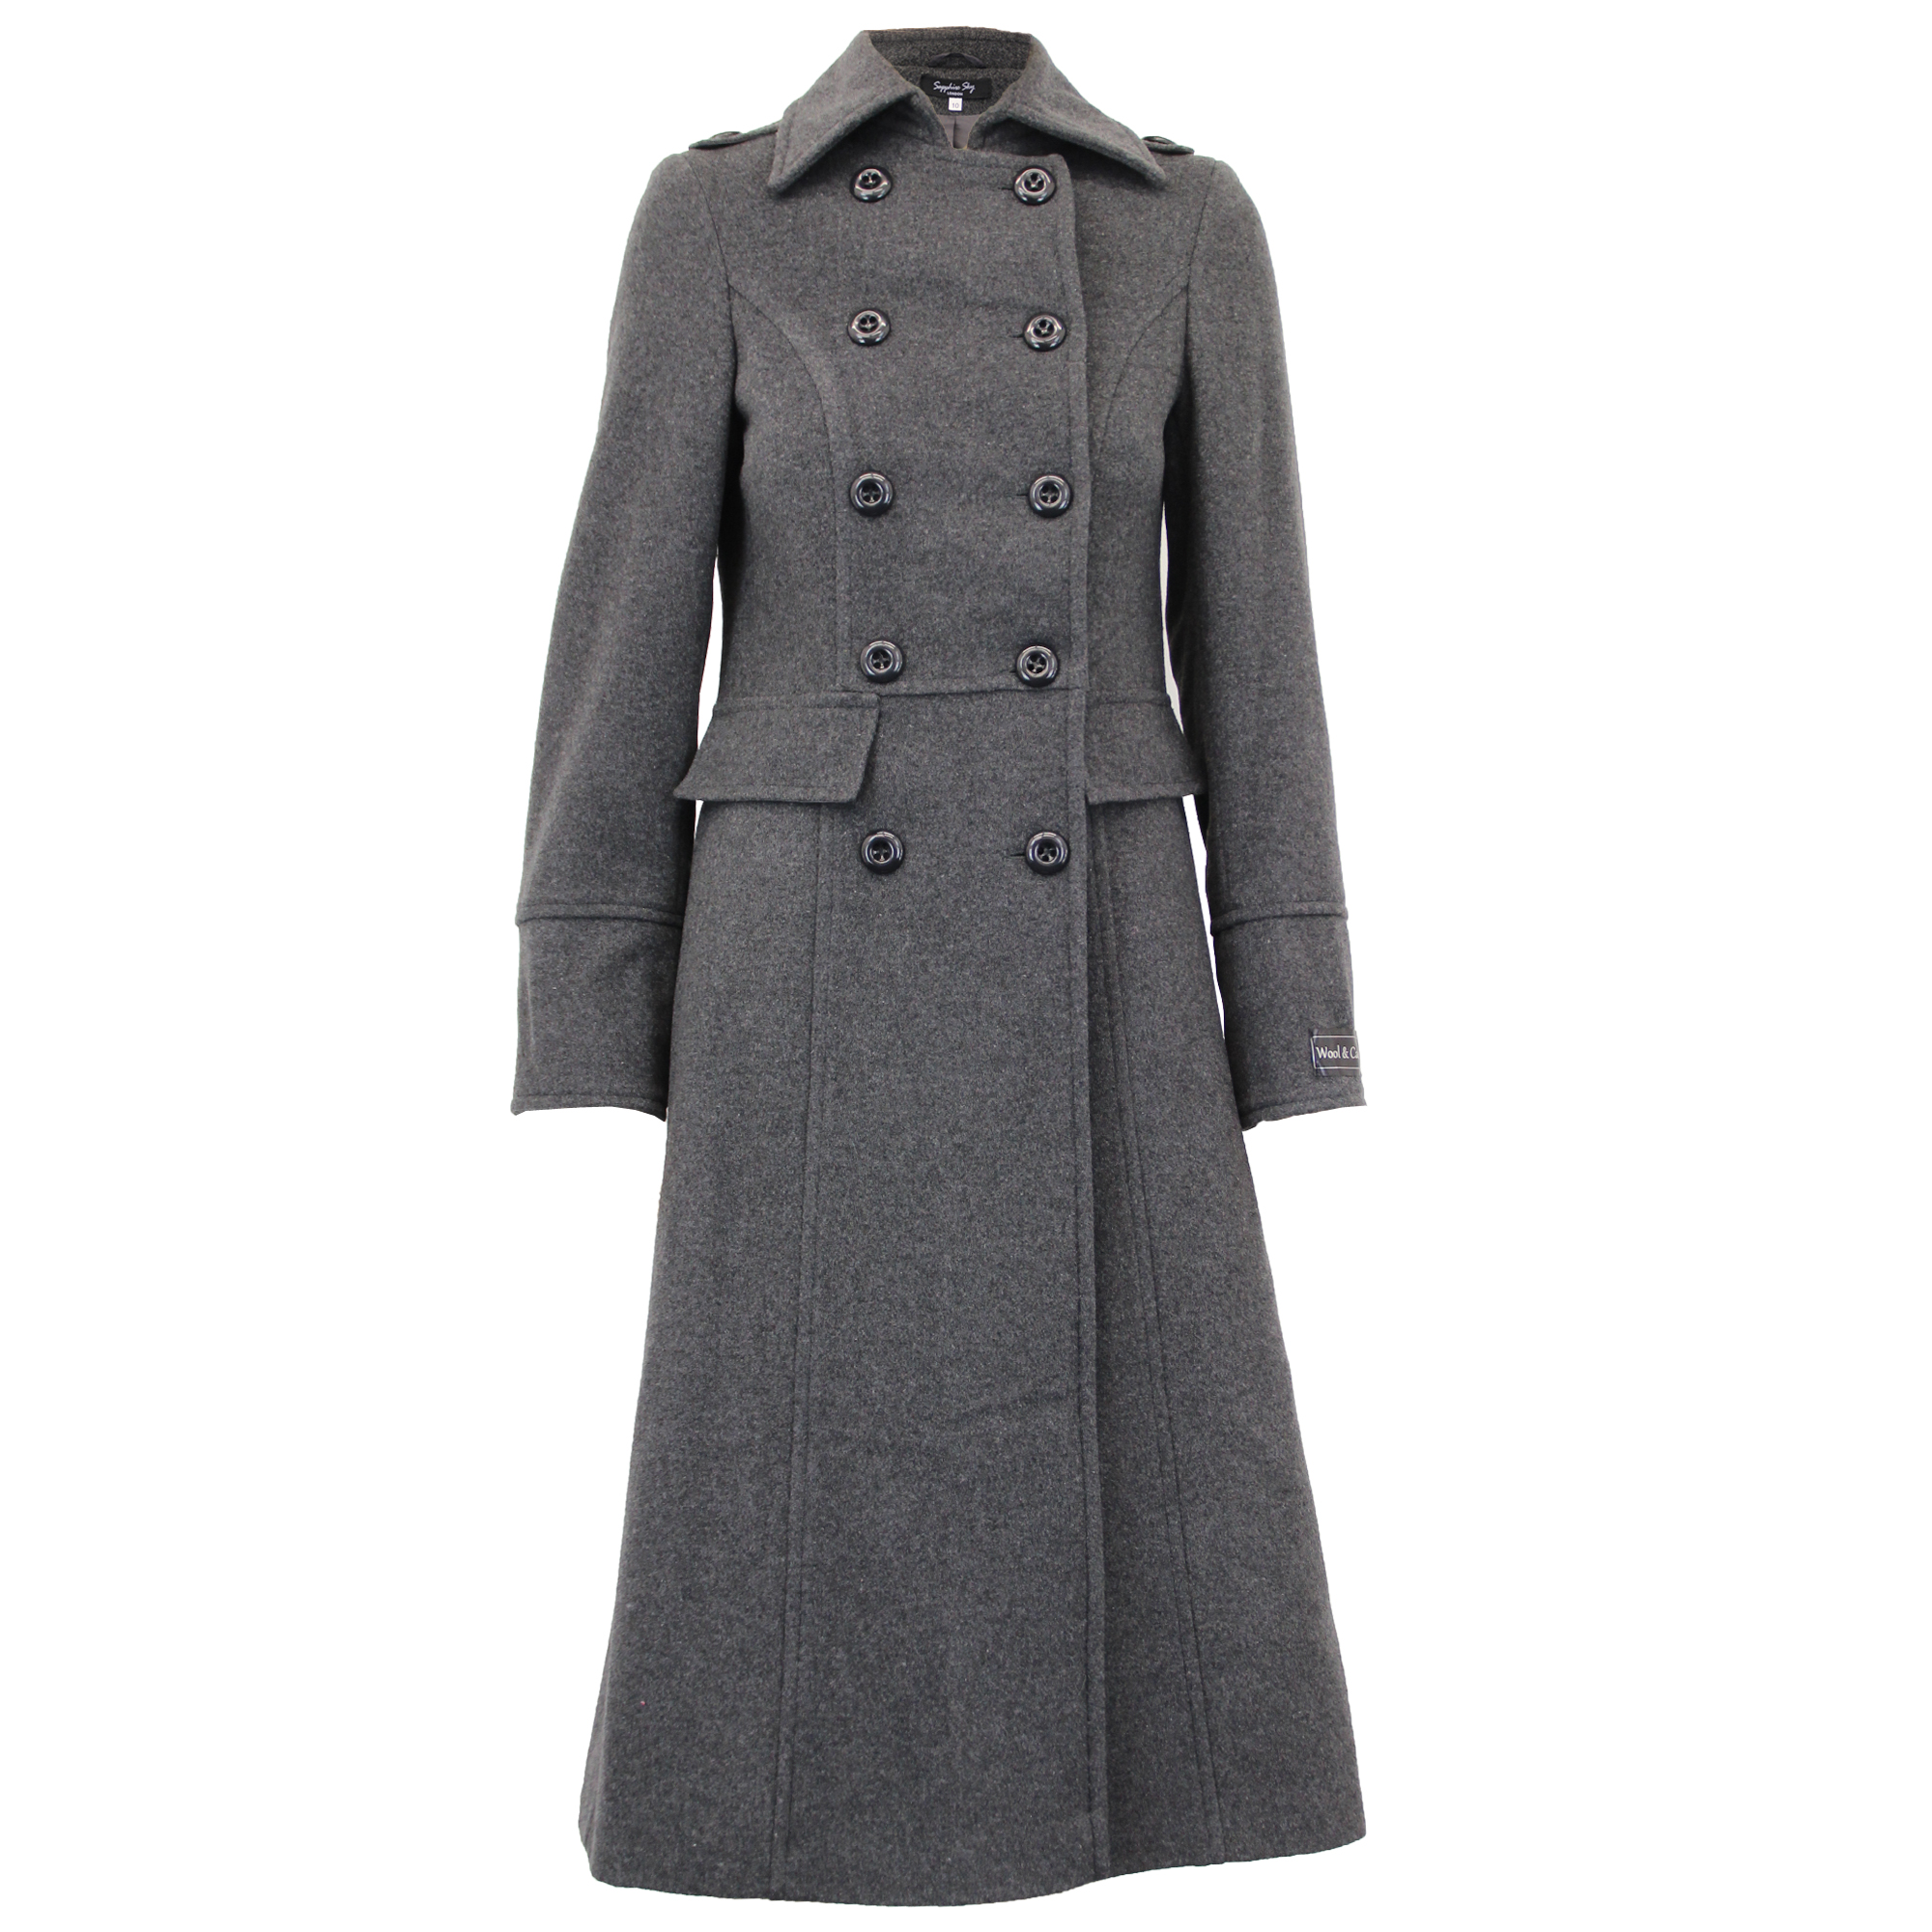 Shop from the collection of coats and jackets for women. From our Heritage Trench Coat to wool-cashmere duffles. Explore our designs for all weathers. Women's Coats & Jackets. Burberry uses your personal information to offer an enhanced customer service tailored to your preferences. You provide your personal information voluntarily.